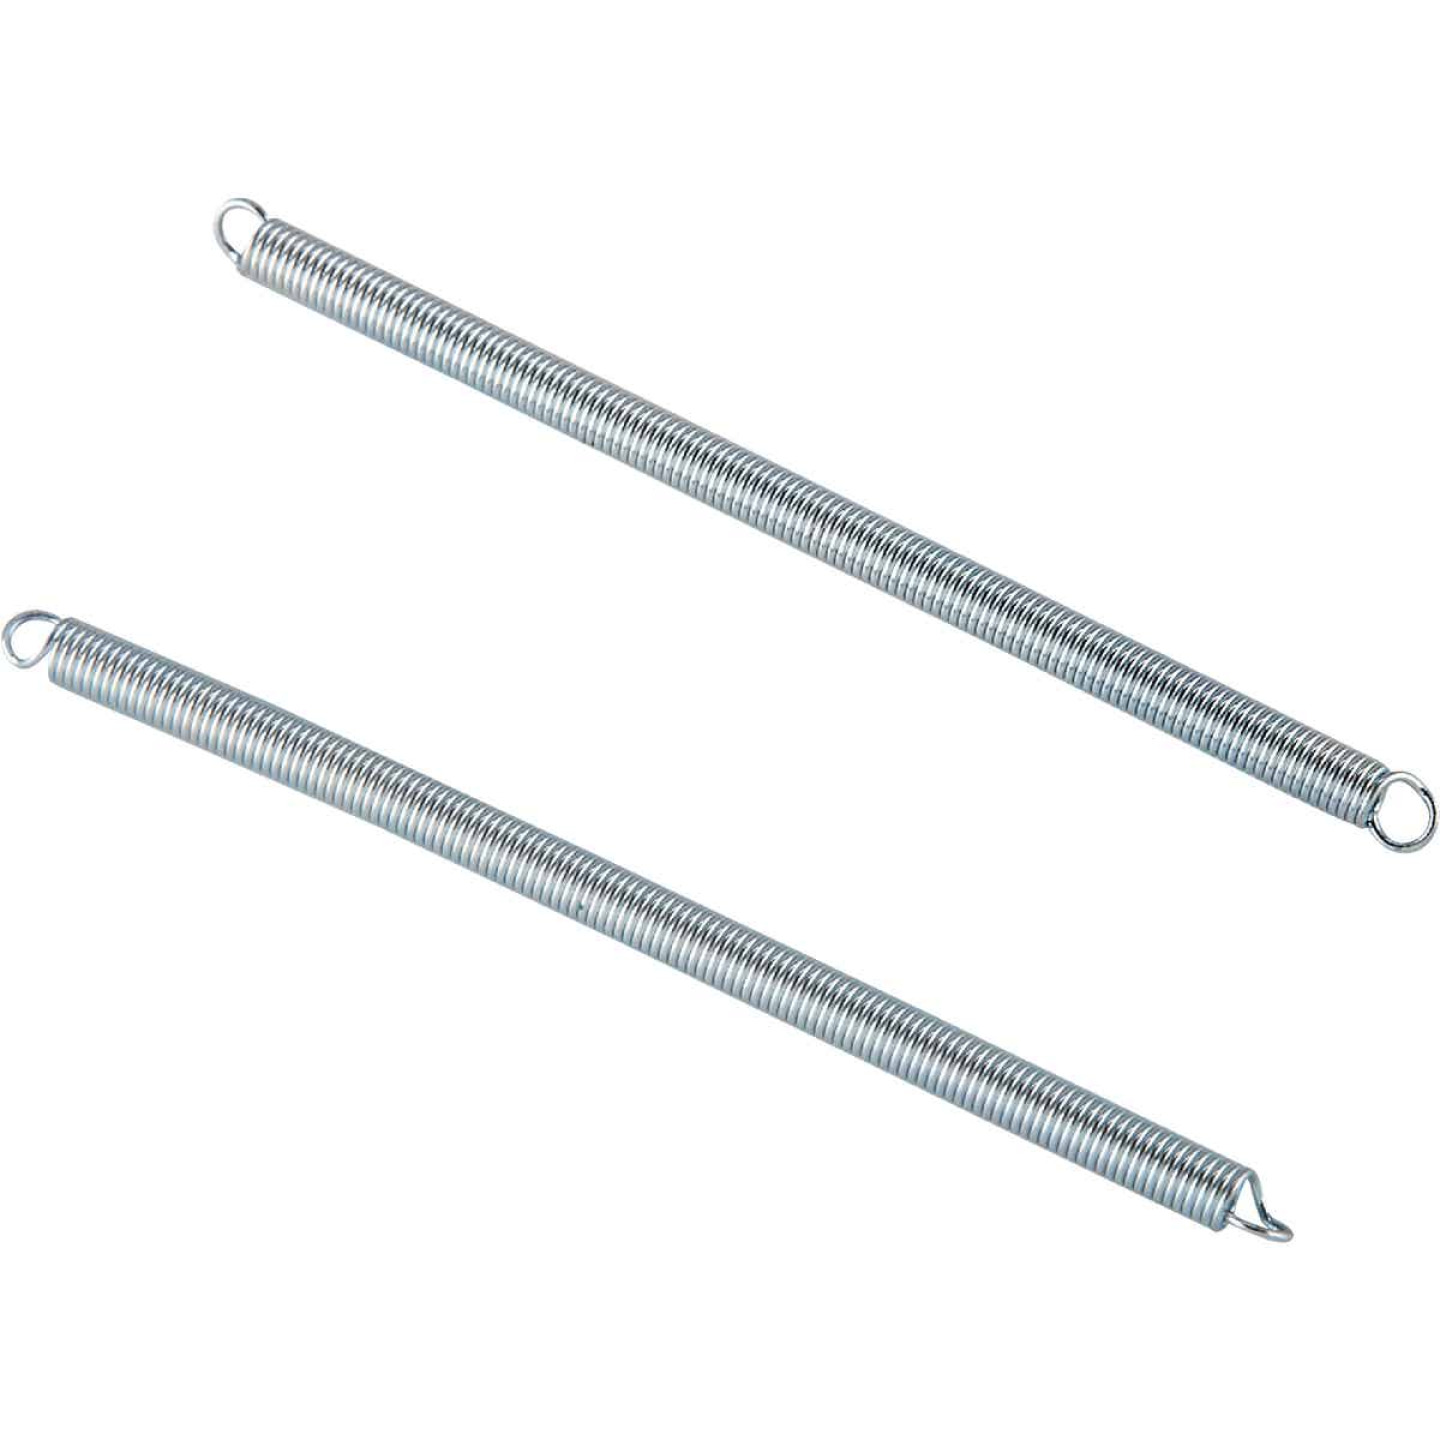 Century Spring 2-1/2 In. x 5/32 In. Extension Spring (2 Count) Image 1